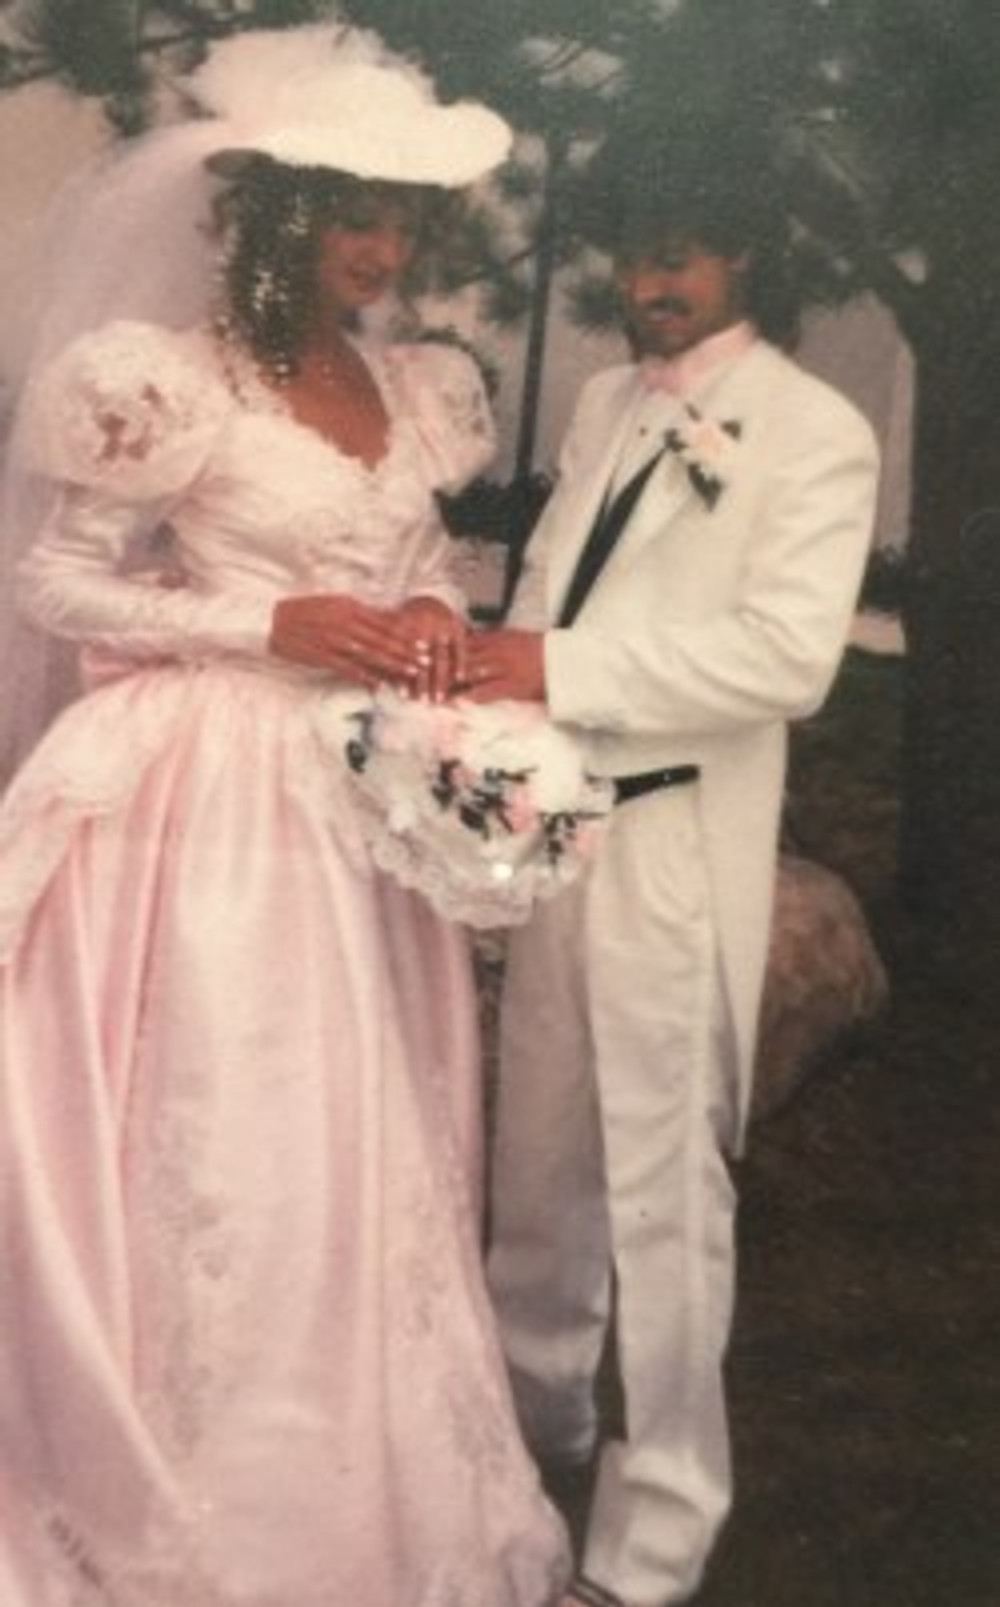 Kryssy and me on our wedding day, 1991.